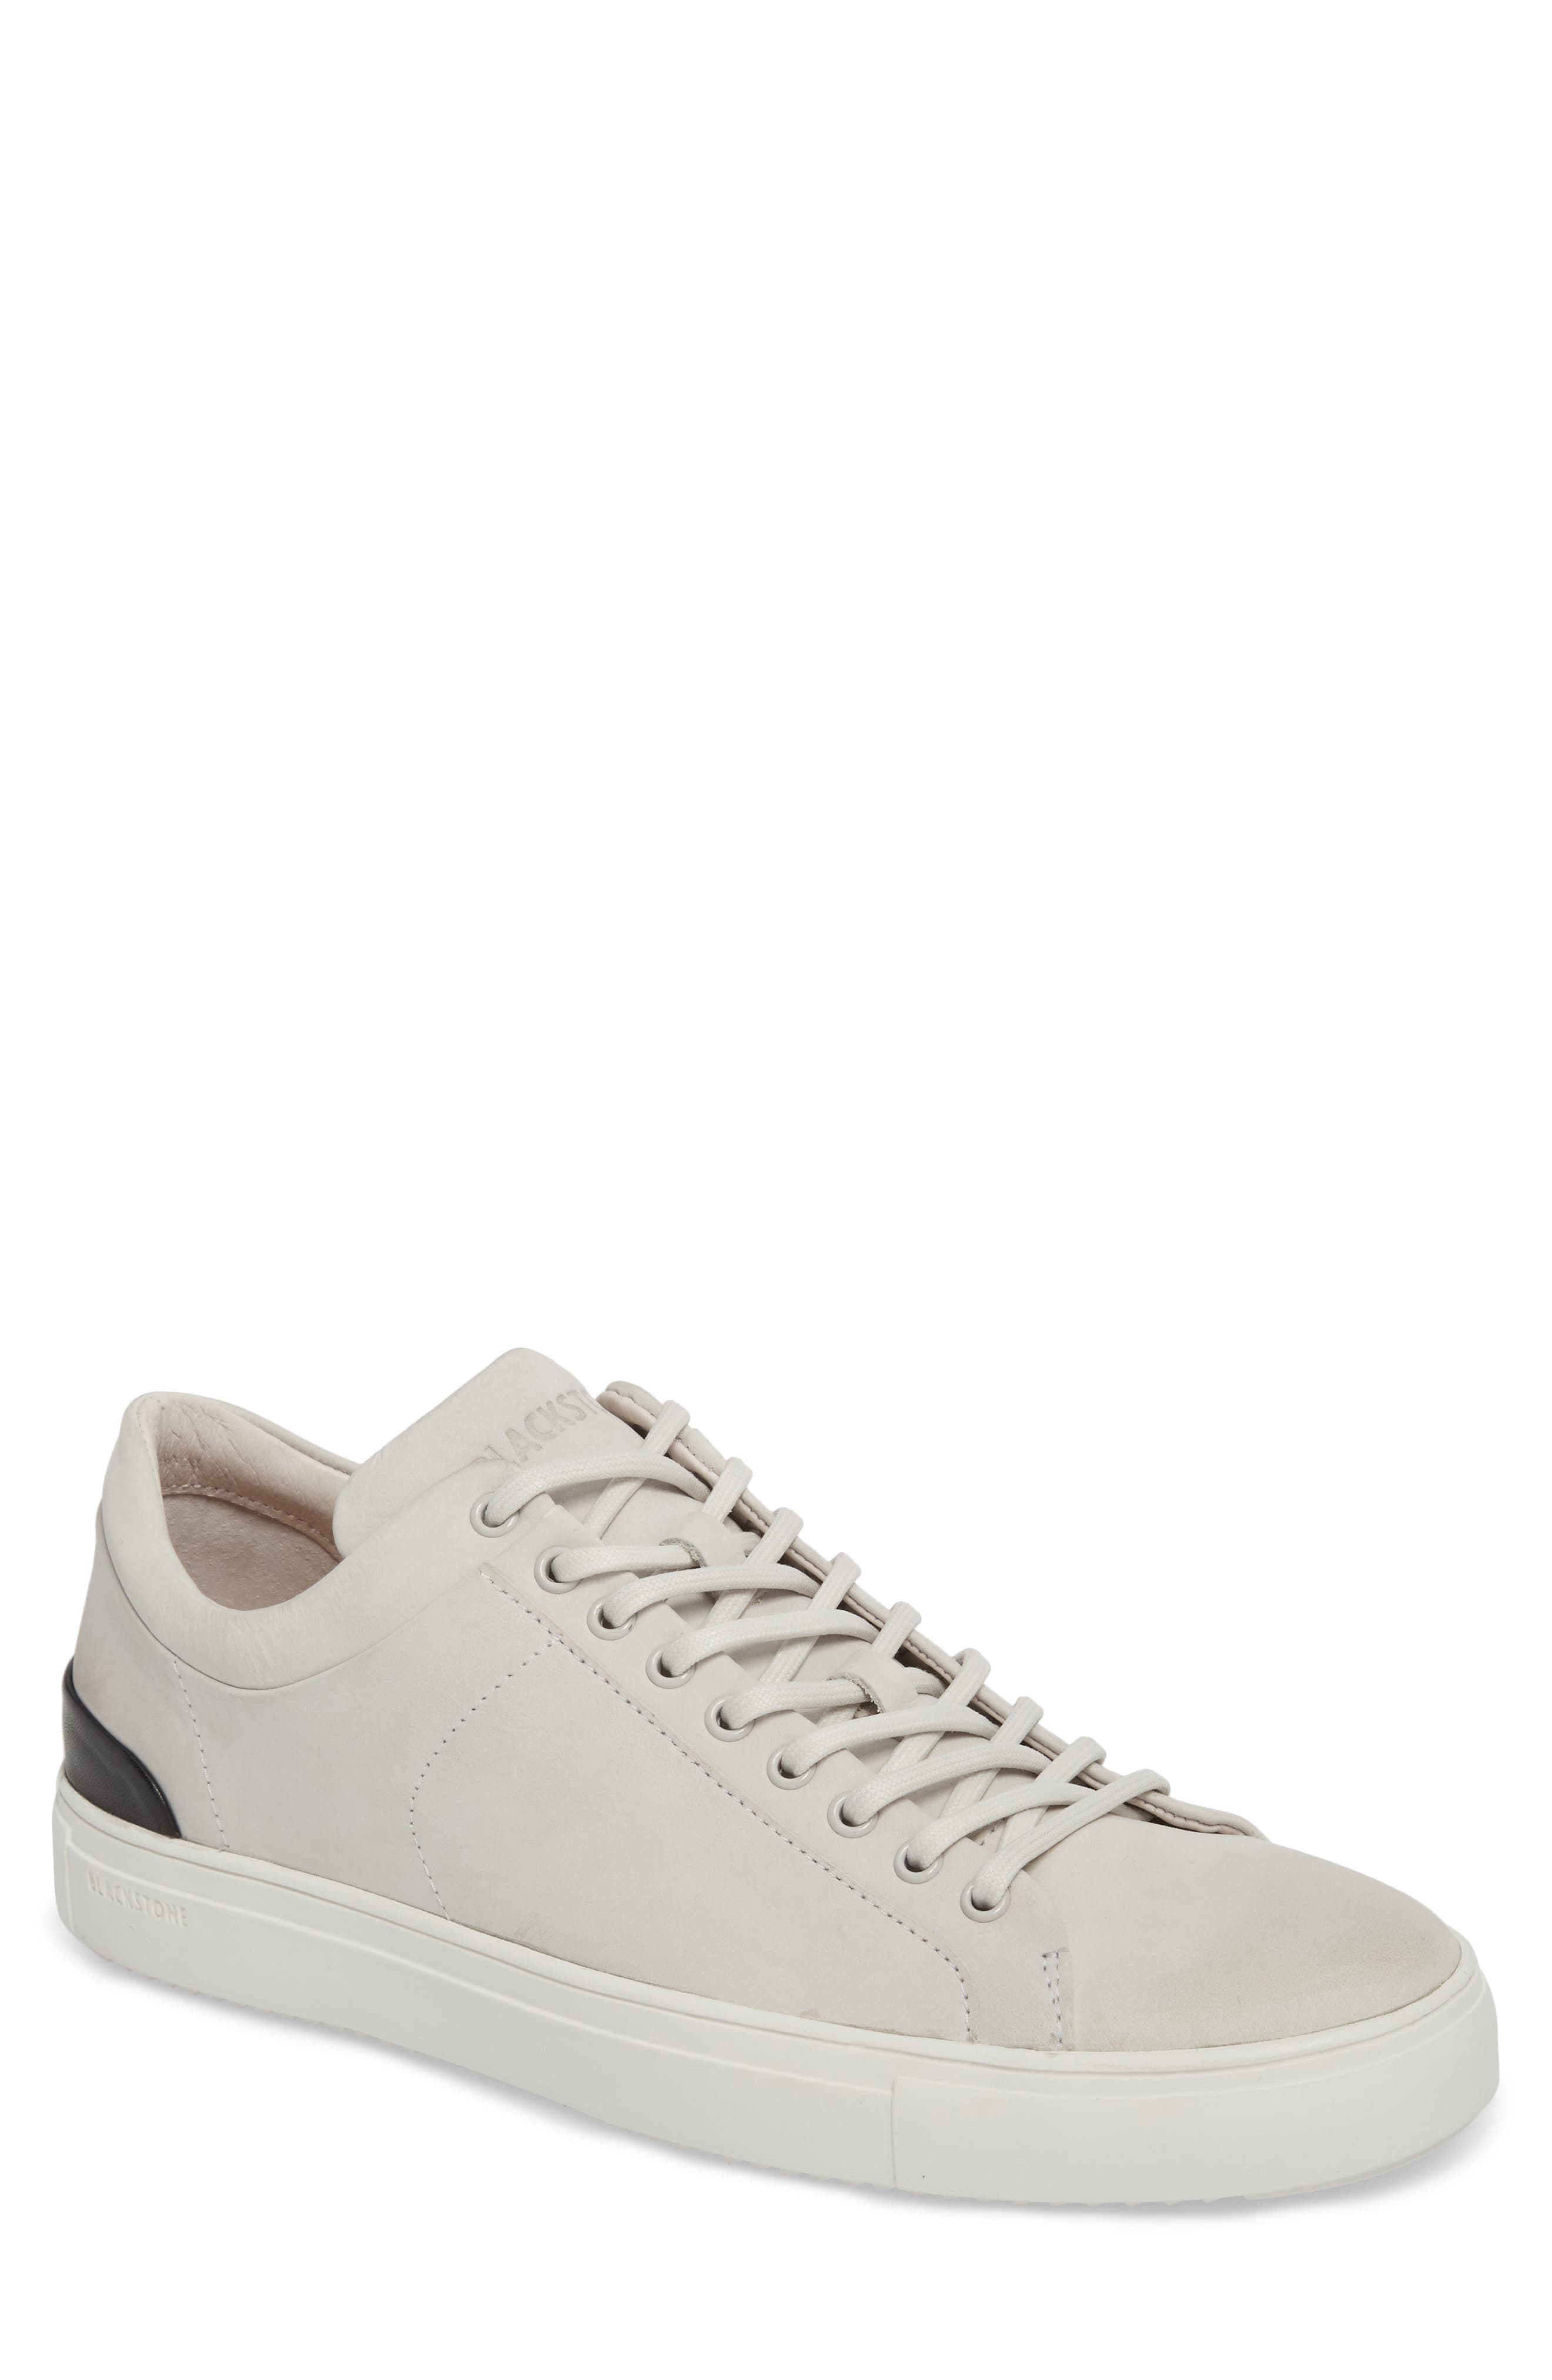 PM56 Low Top Sneaker,                         Main,                         color, Wind Chime Leather